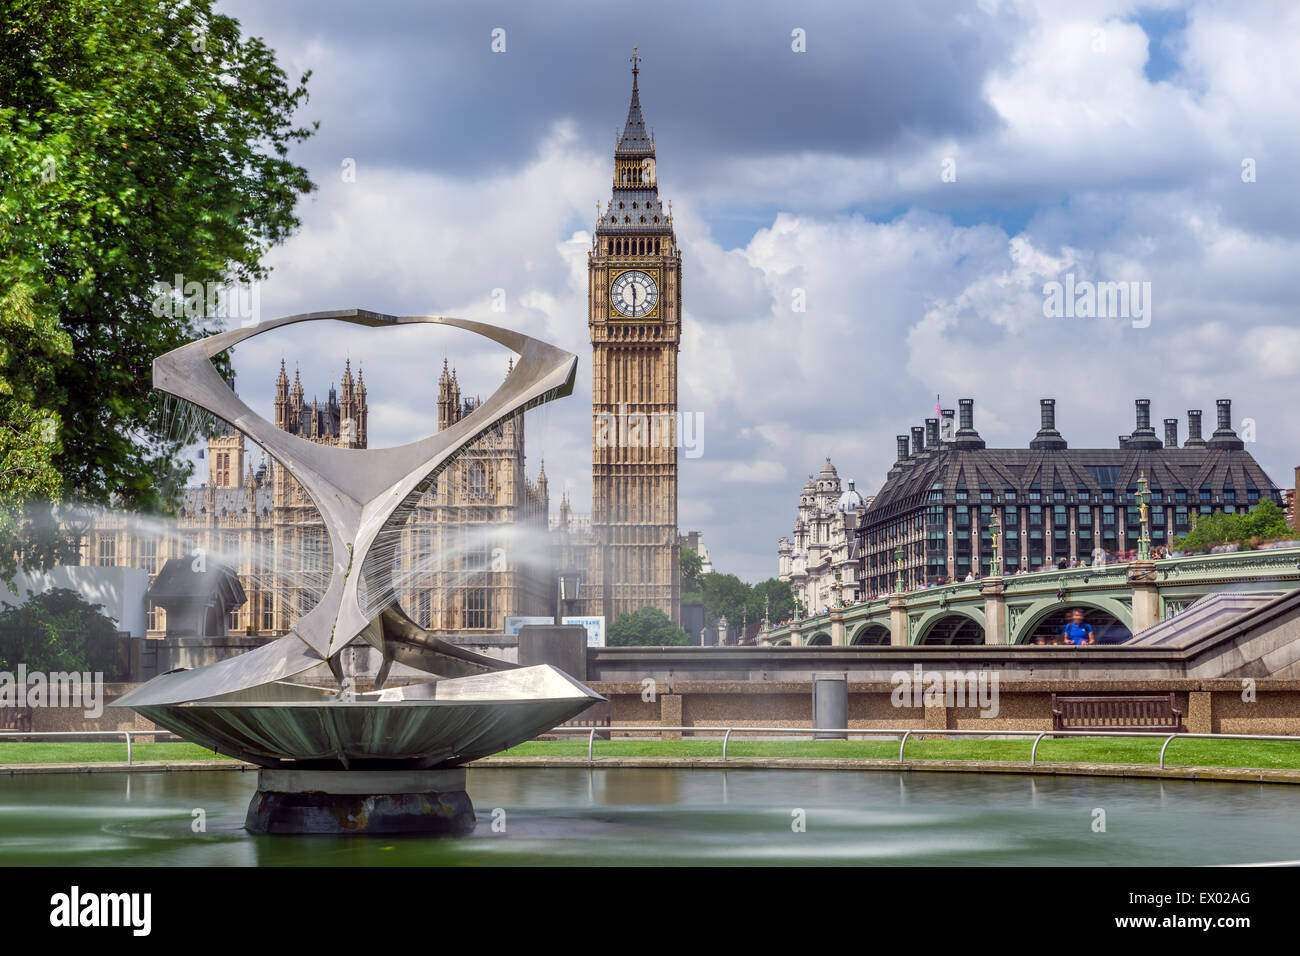 The 'Revolving Torsion' Fountain, St. Thomas' Hospital - Stock Image